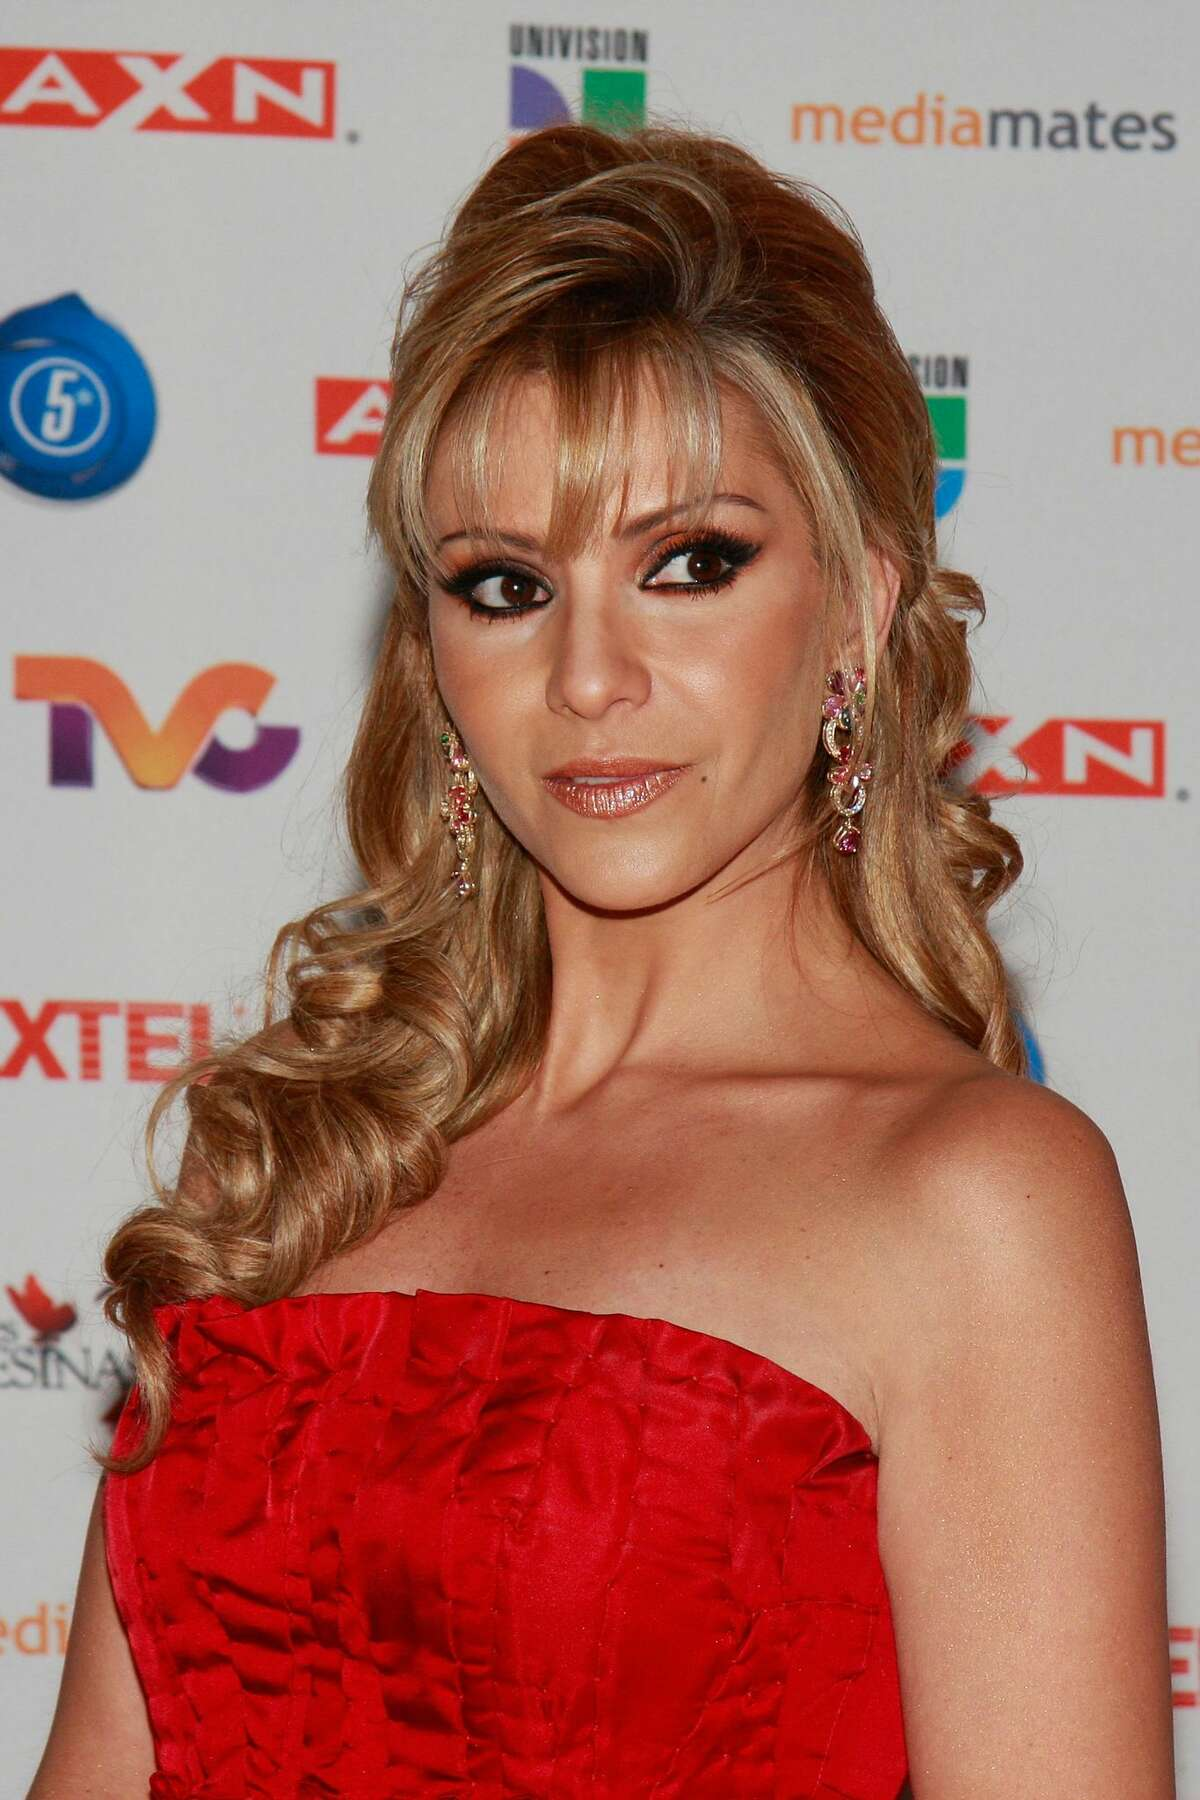 Actress Daniela Castro poses for a photo during the premiere of the television series 'Mujeres Asesinas' second season ('Killer Women', in Spanish)) at the facilities of San Angel Televisa on July 12, 2009 in Mexico City, Mexico. (Photo by Daniel Cardenas/Jam Media/LatinContent/Getty Images)